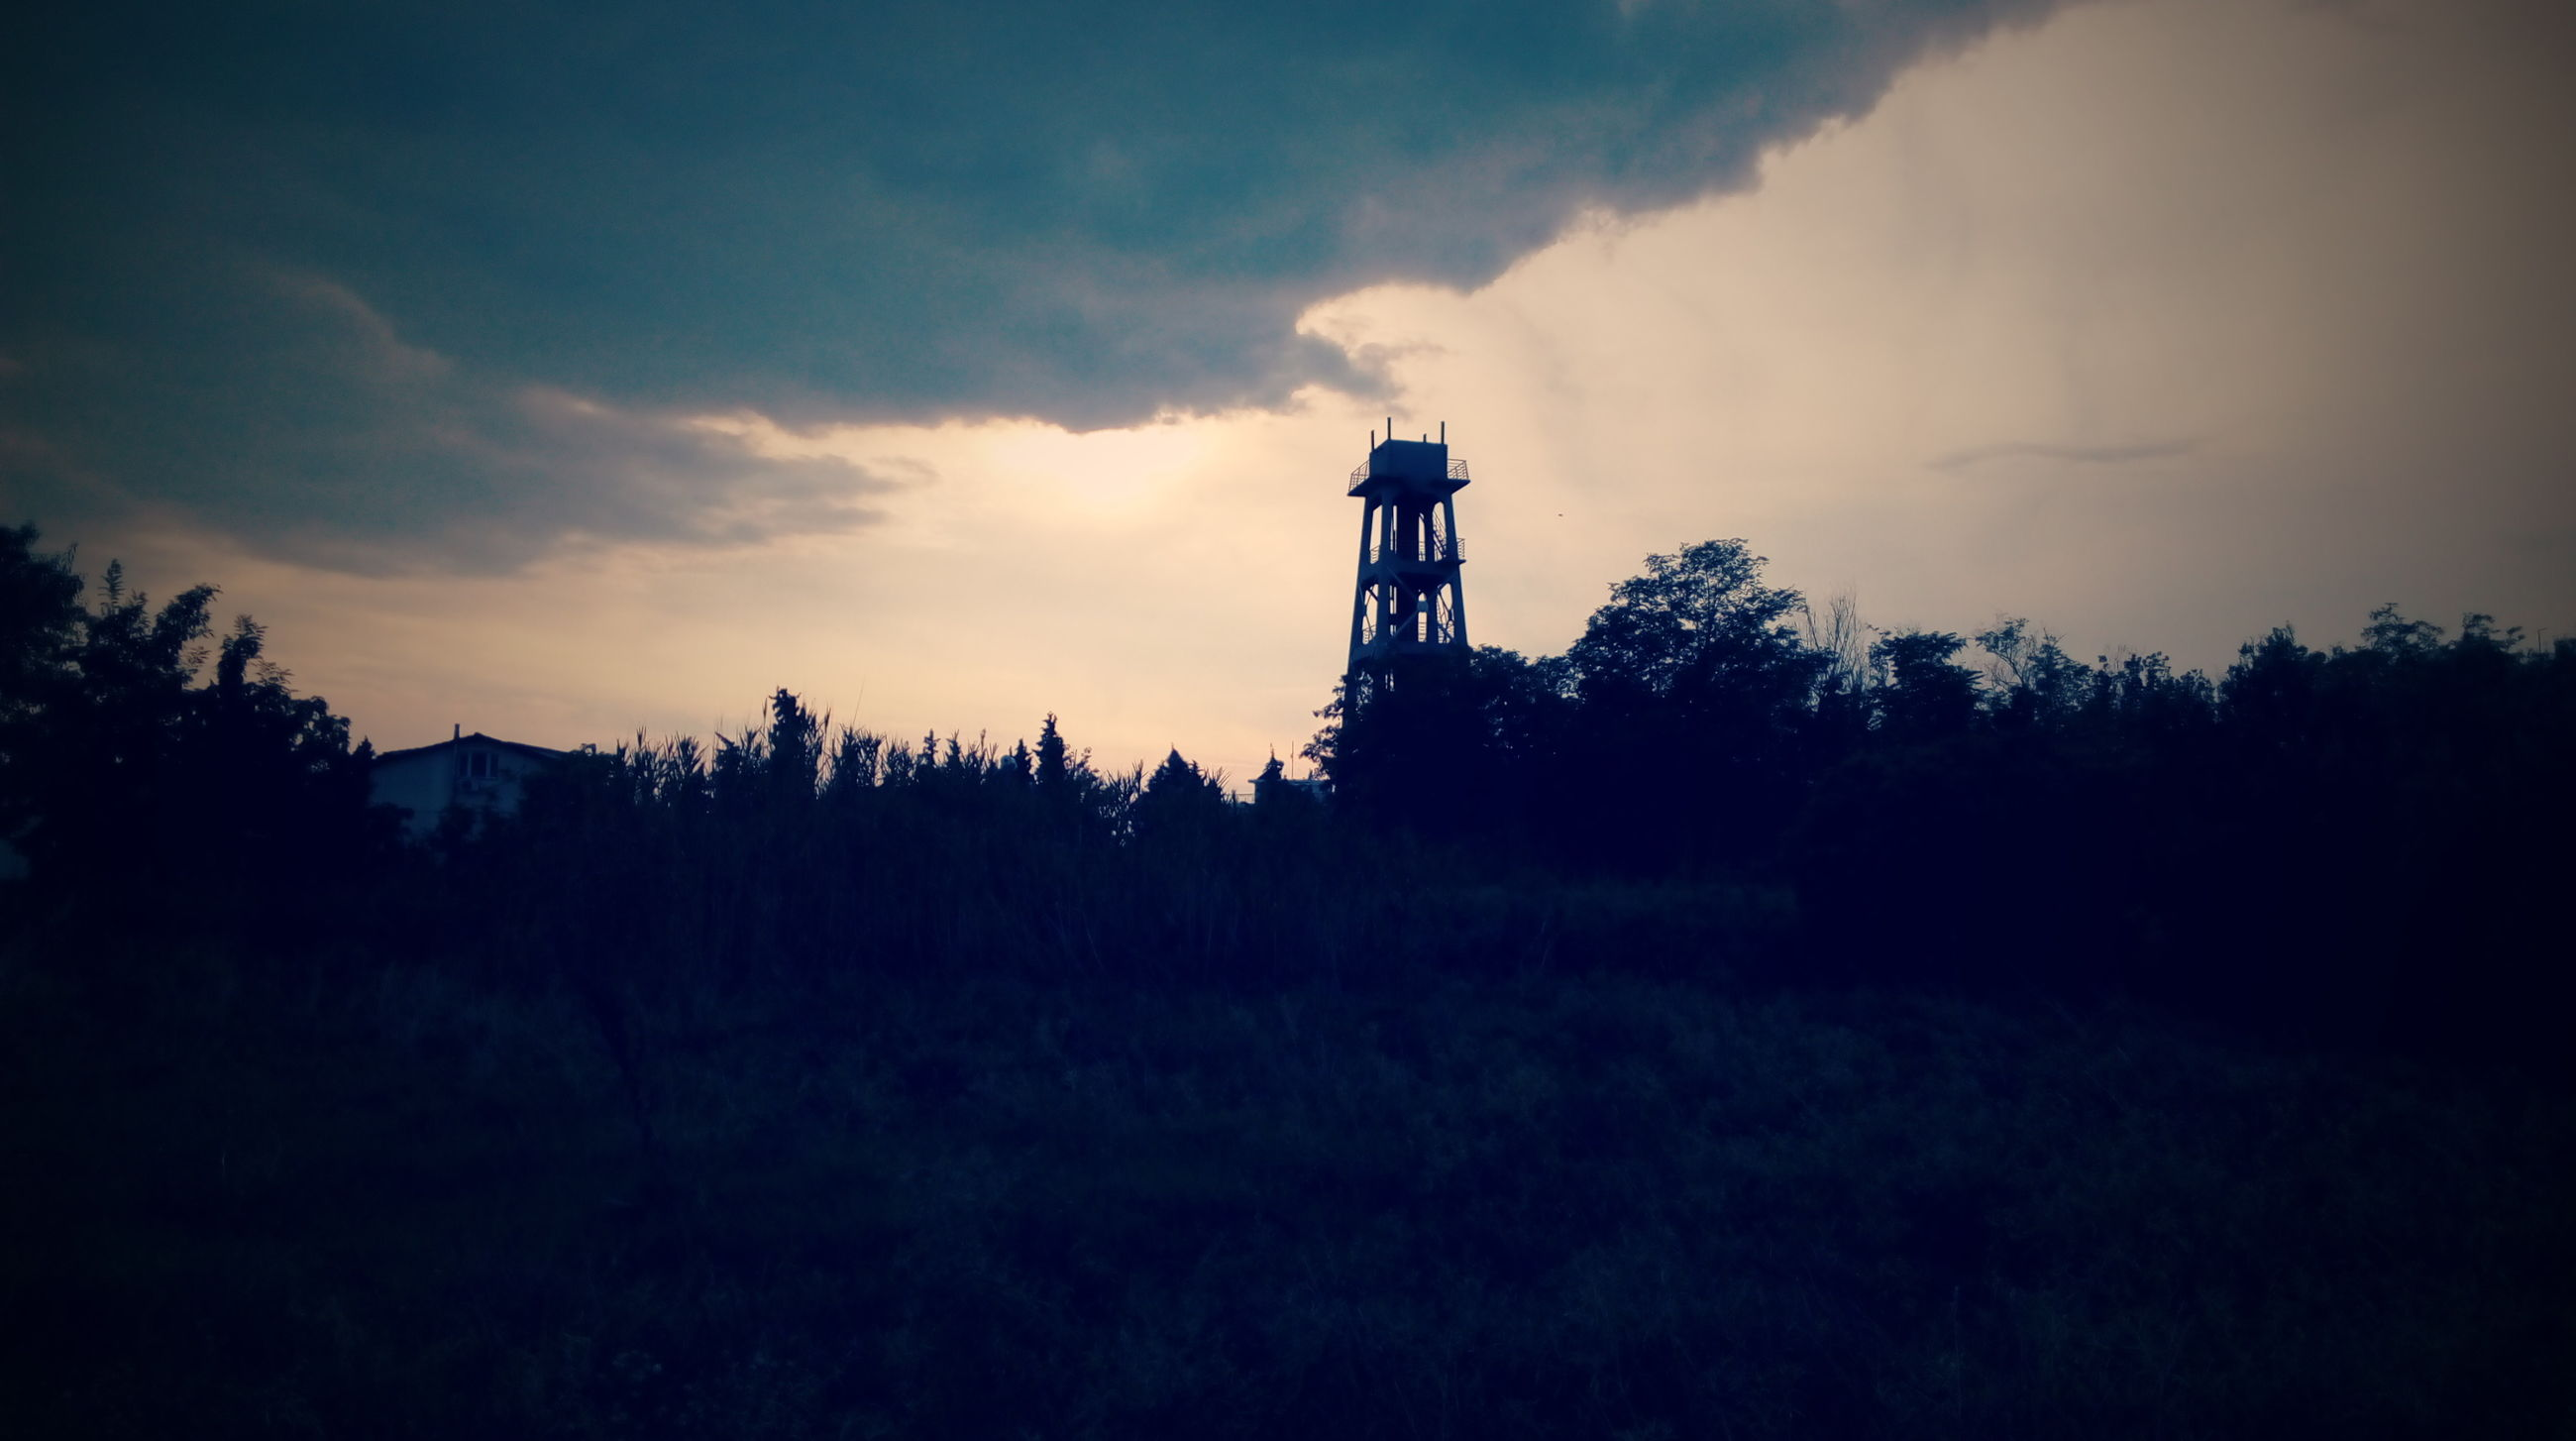 sky, lighthouse, tree, guidance, built structure, silhouette, sunset, architecture, tower, landscape, low angle view, direction, cloud - sky, nature, building exterior, tranquility, field, tranquil scene, beauty in nature, dusk